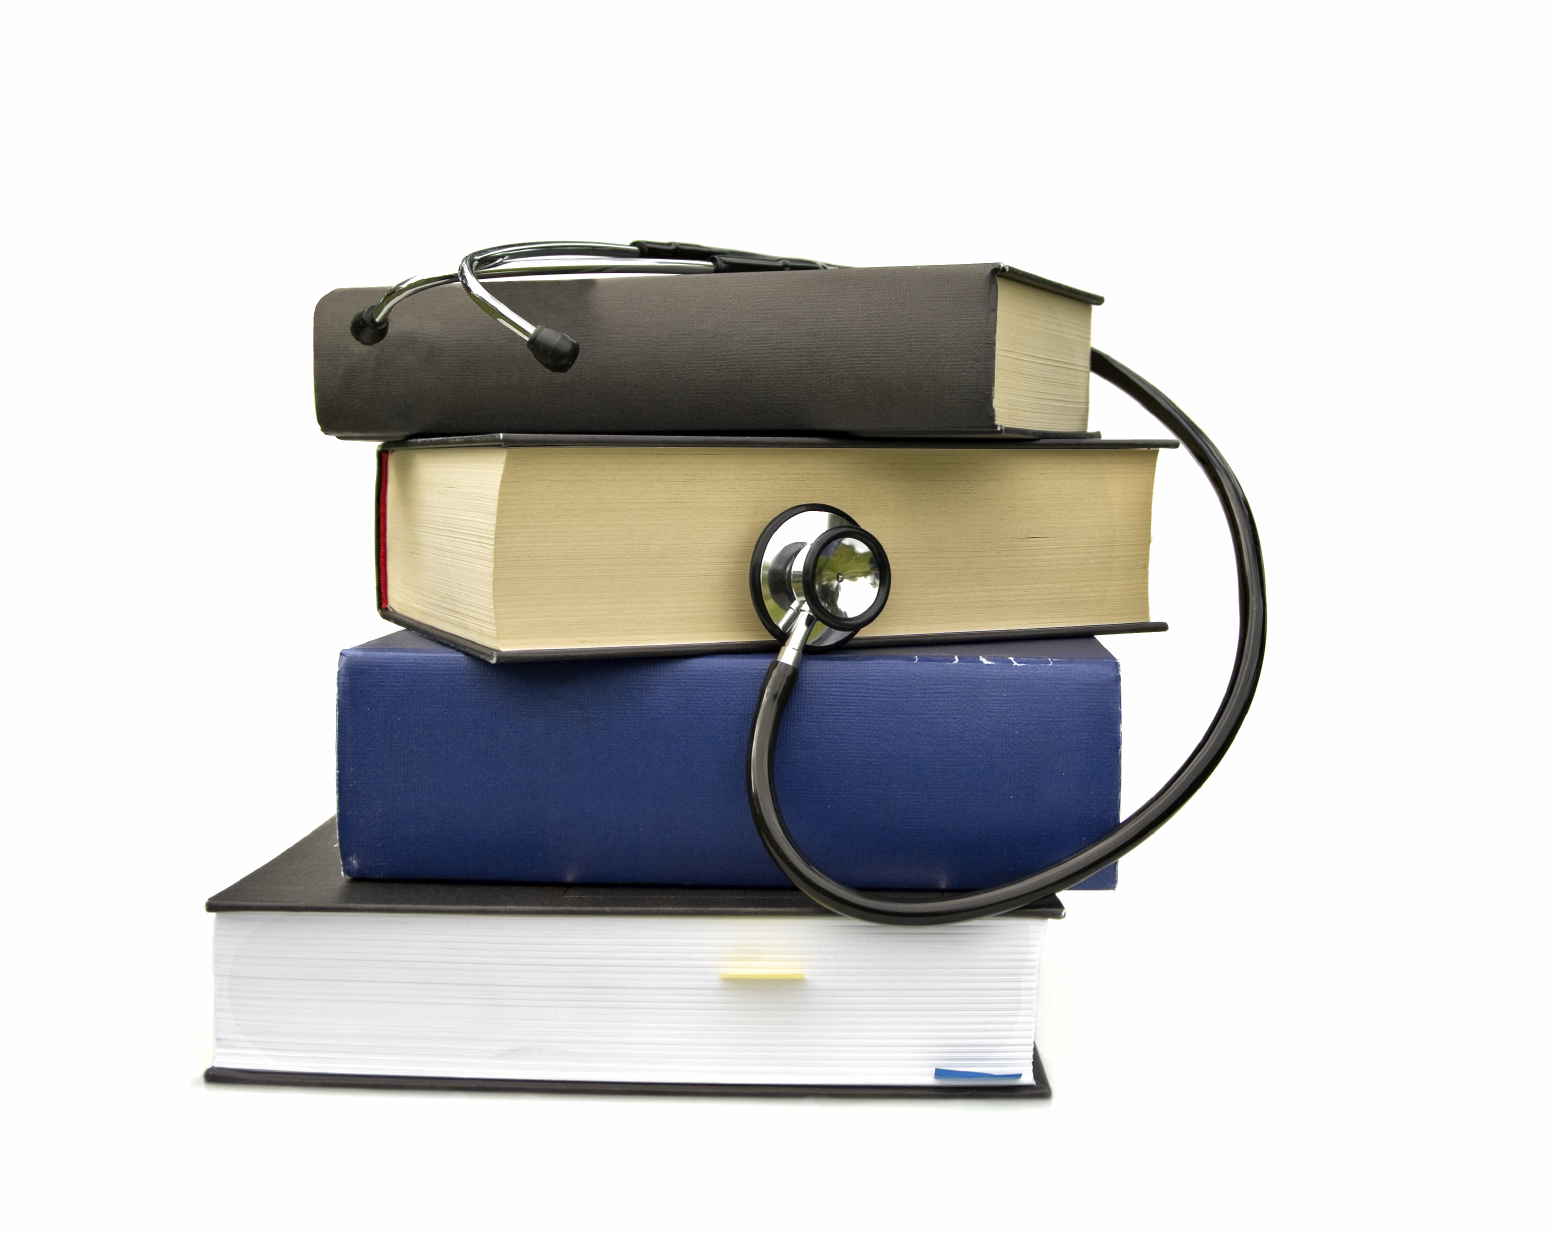 dissertation medical negligence the role of med schools in medical malpractice the role of med schools in medical malpractice